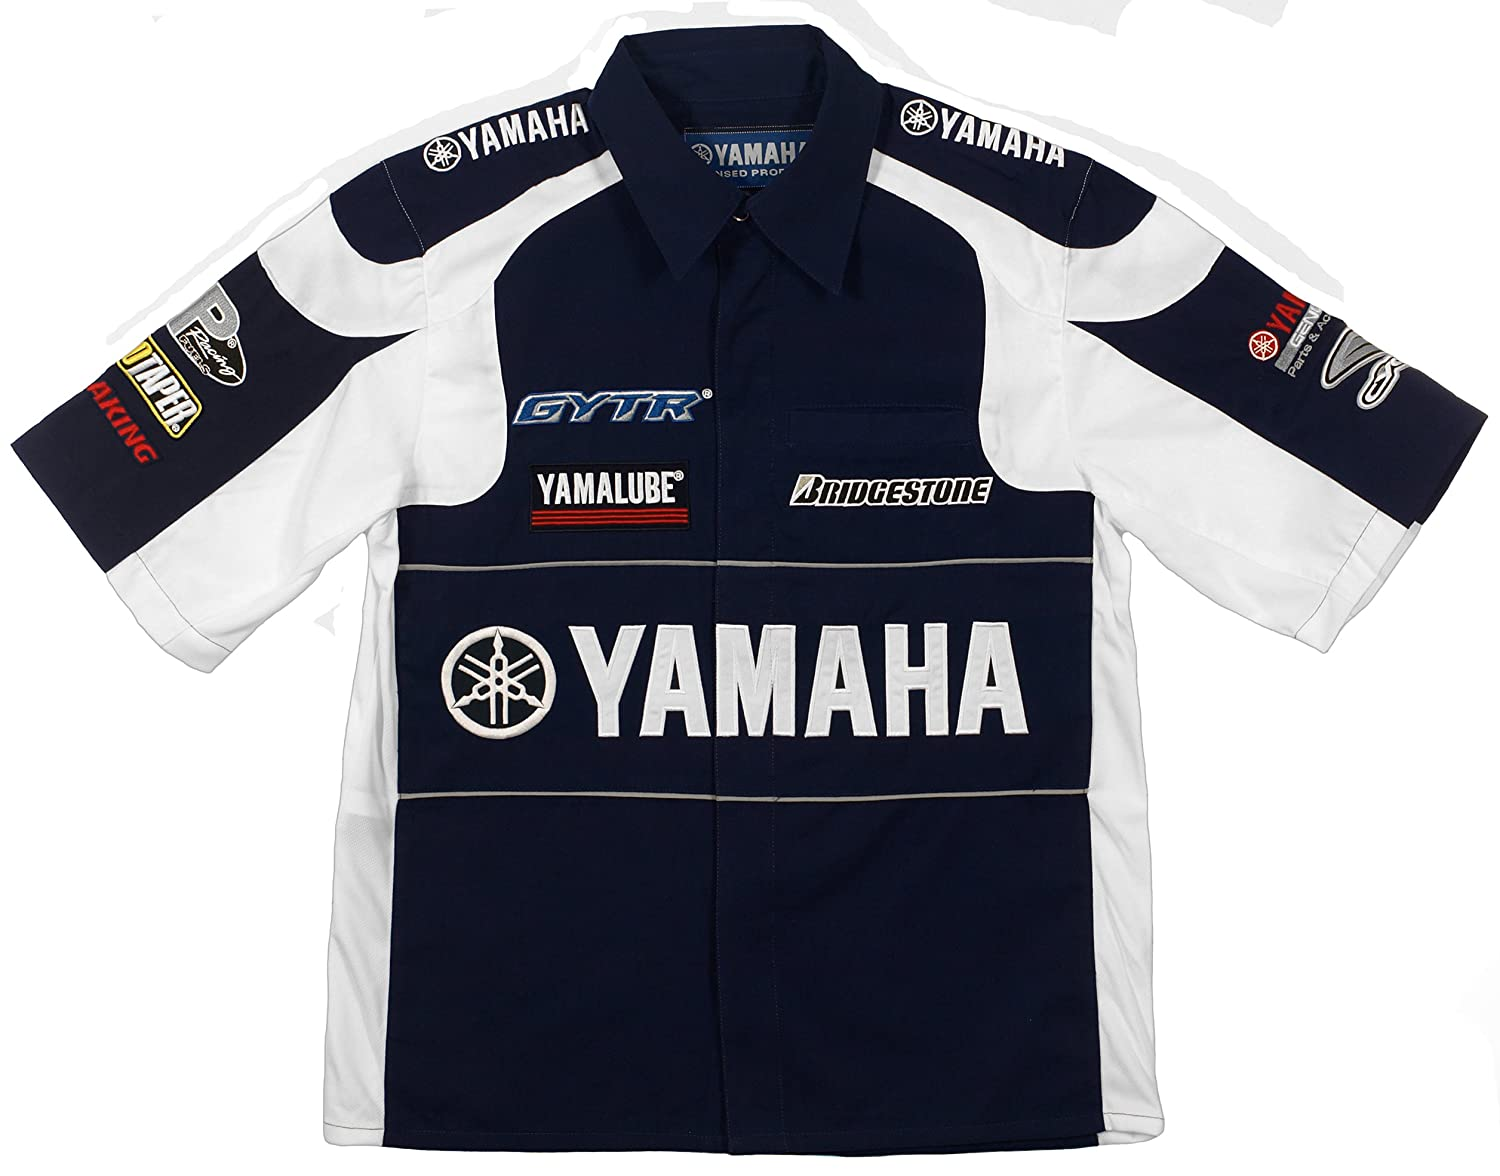 19a45ae5 Amazon.com: Yamaha Racing Team Embroidered Pit Shirts 3 Great Styles in  Mens and Womens (X-Small, Navy Blue): Clothing